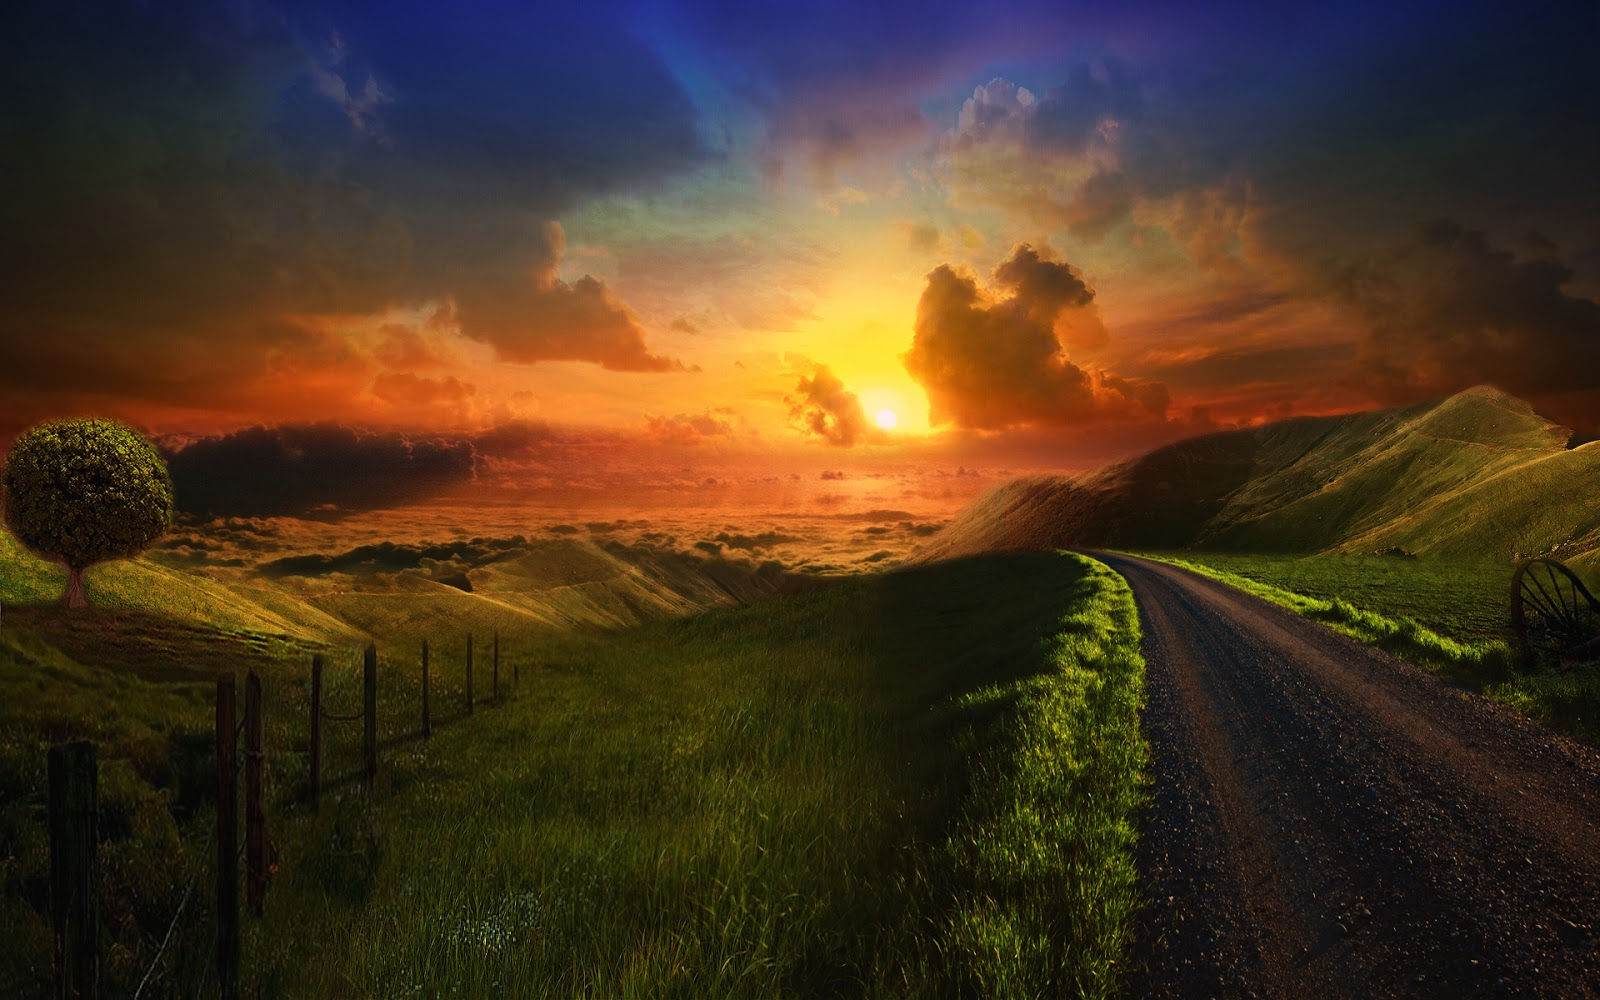 Road Sunset Wallpaper Wallpapers World: Octo...